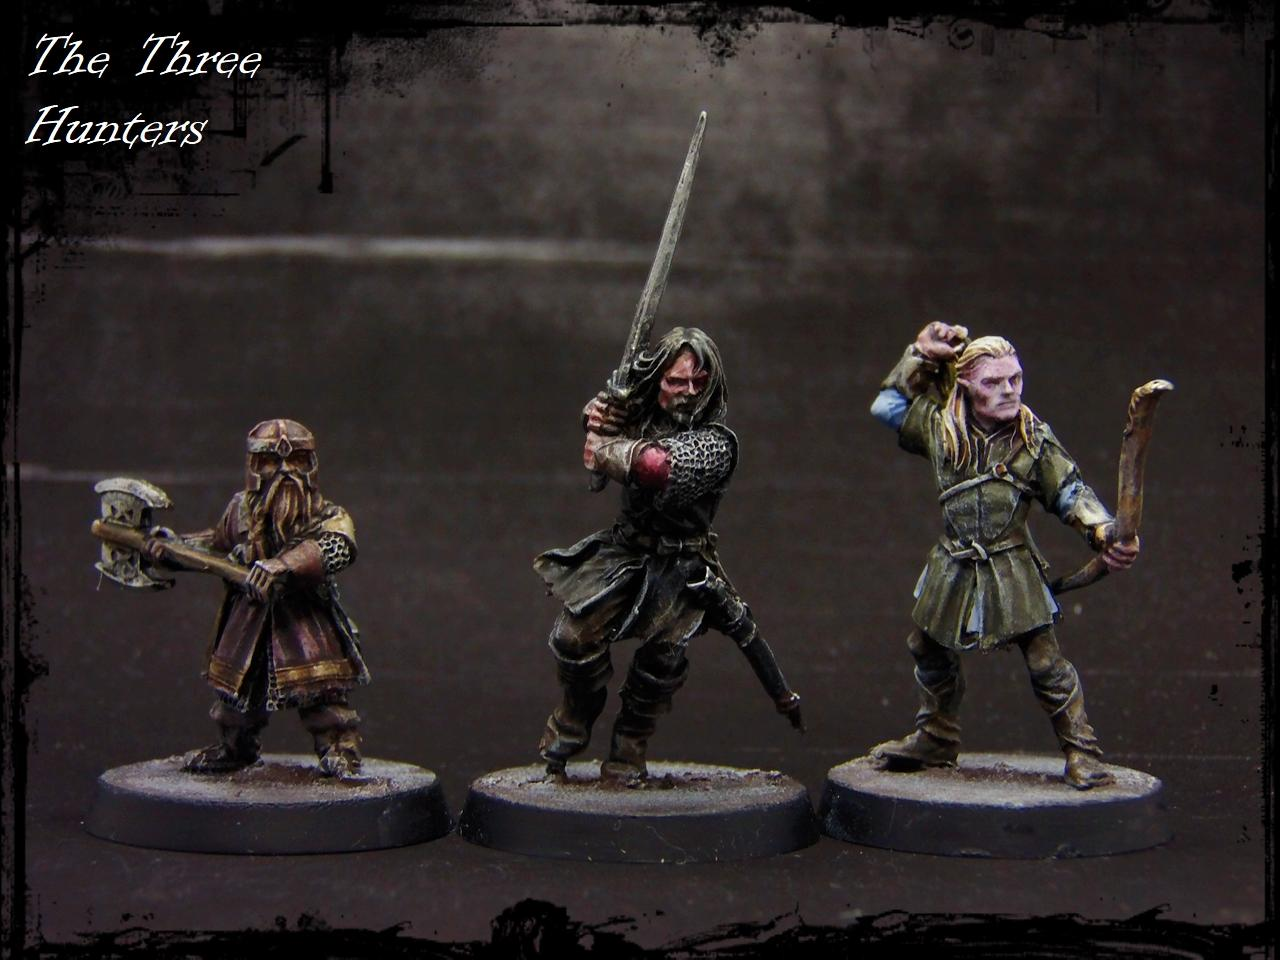 Fellowship Of The Ring, Games Workshop, Lord Of The Rings